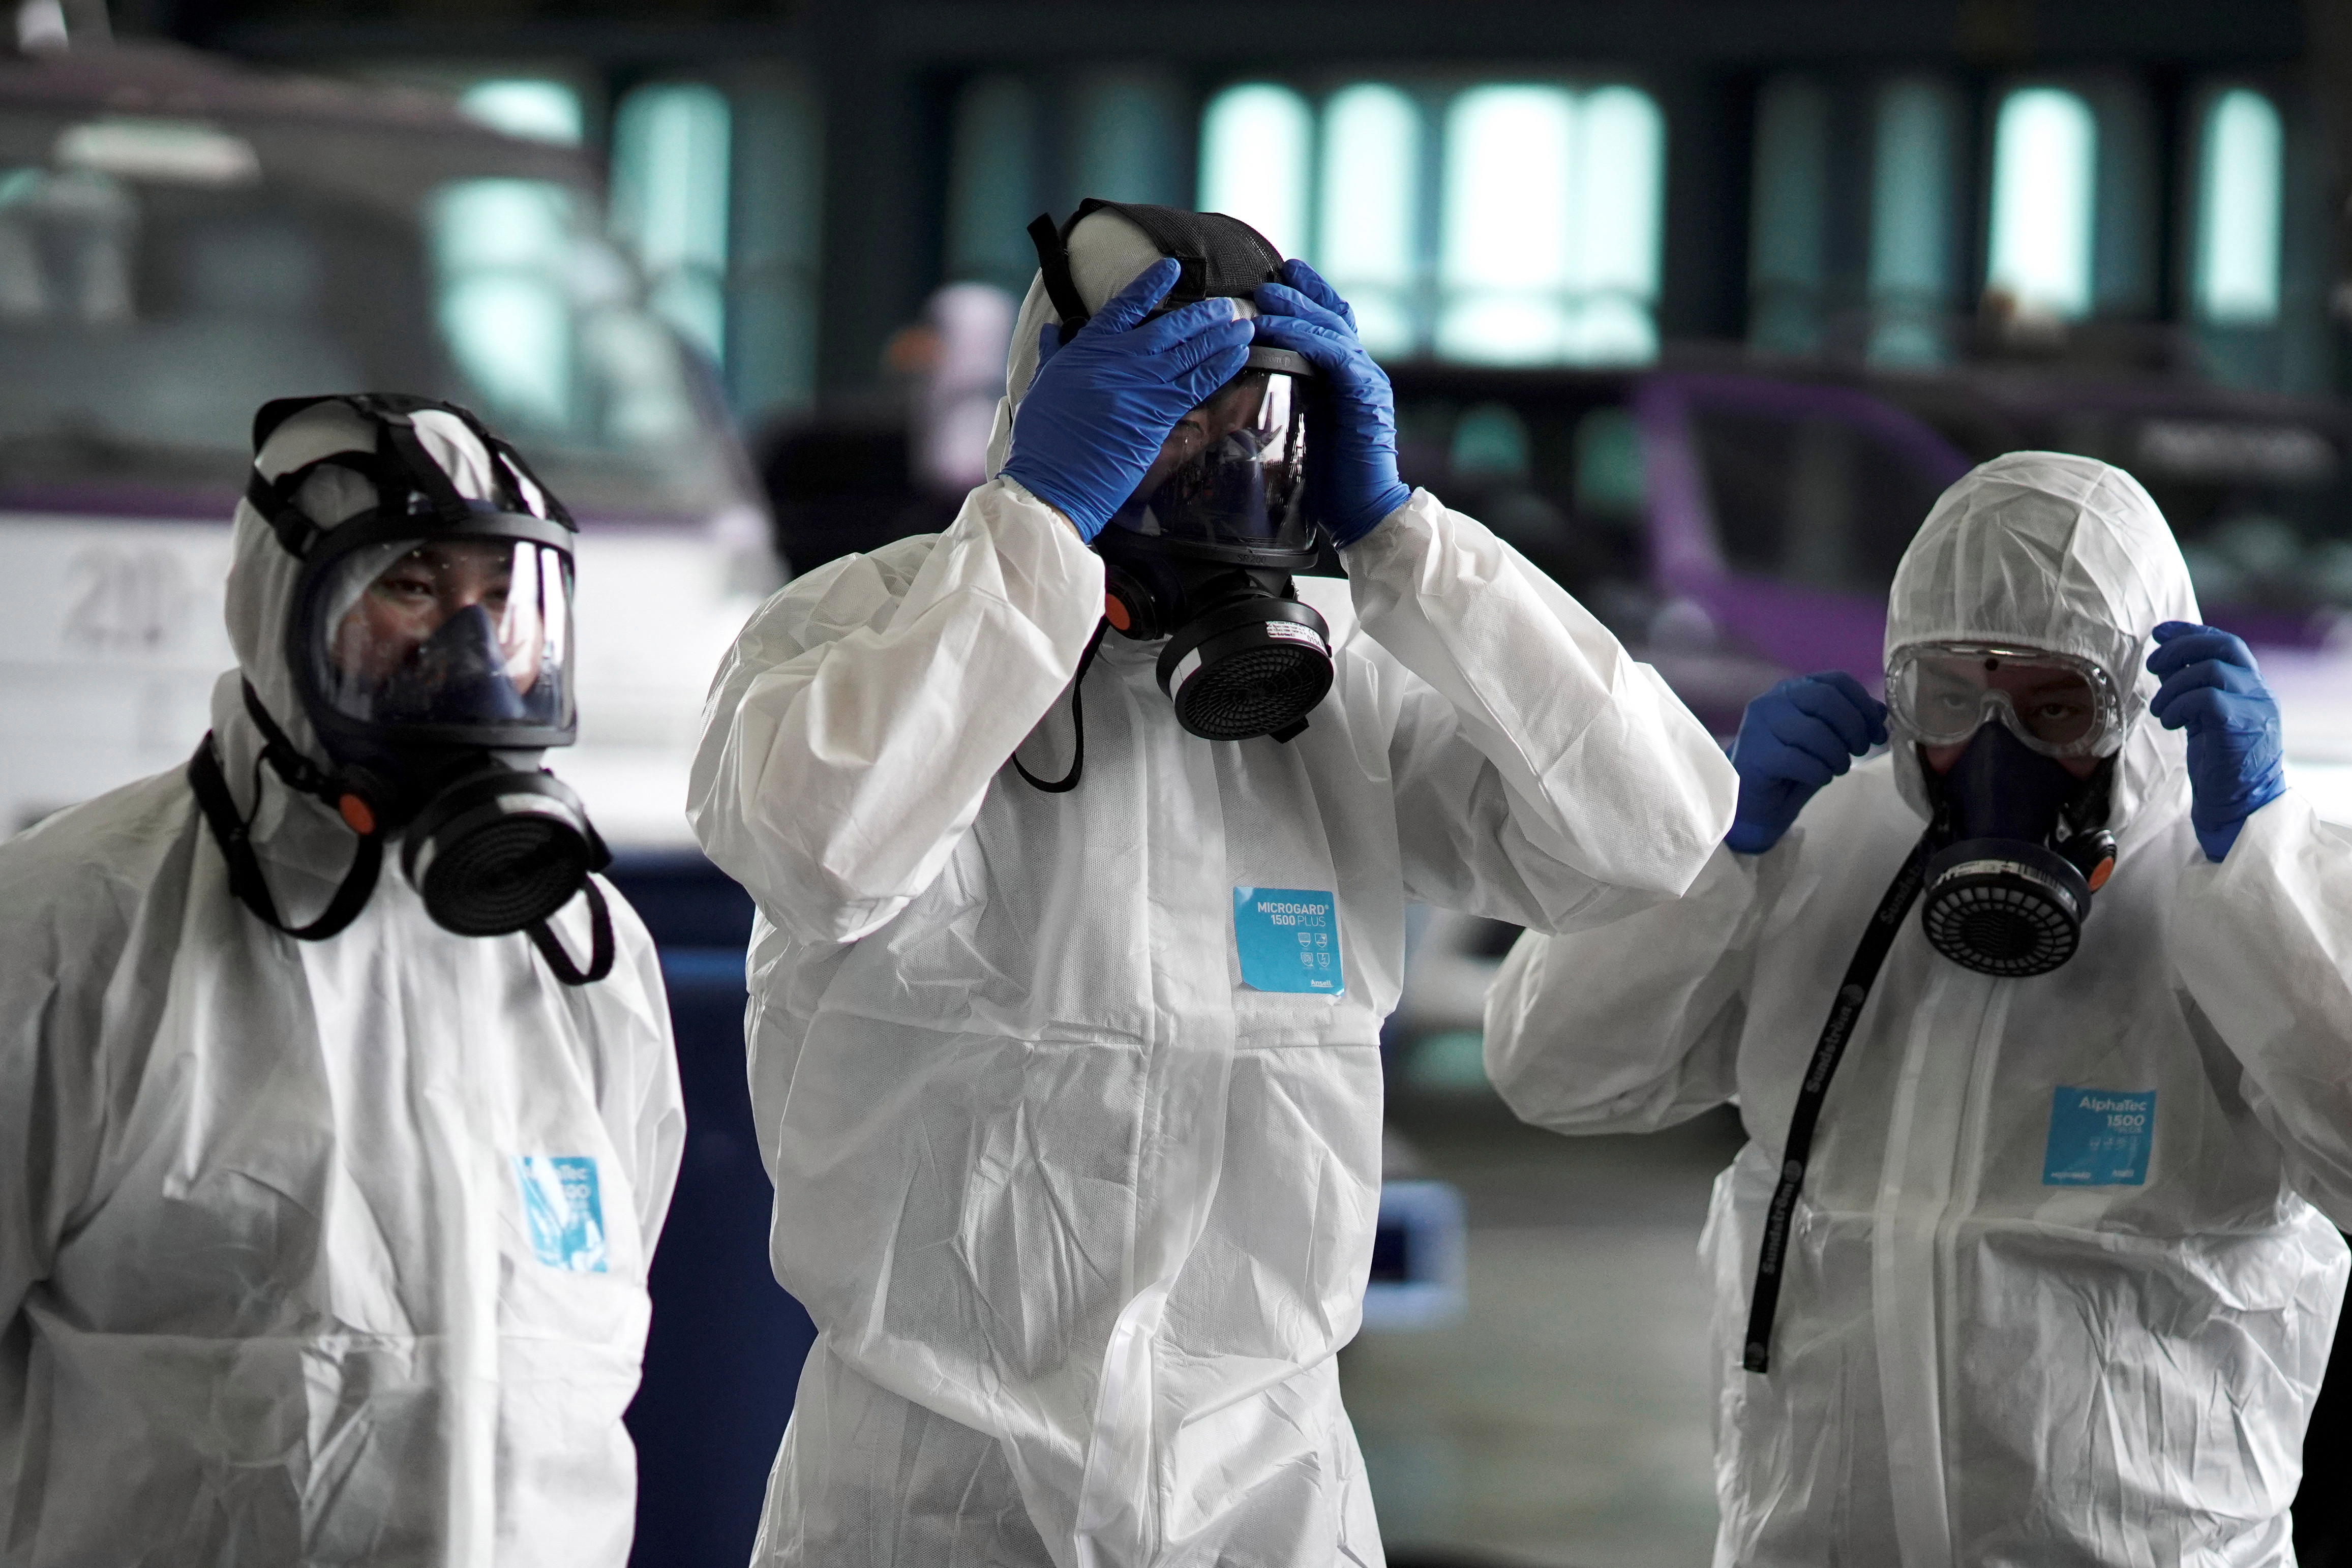 Three people have caught the deadly coronavirus outside of crisis-hit China, image shows Thai Airways workers in hazmat suits as they disinfect a plane